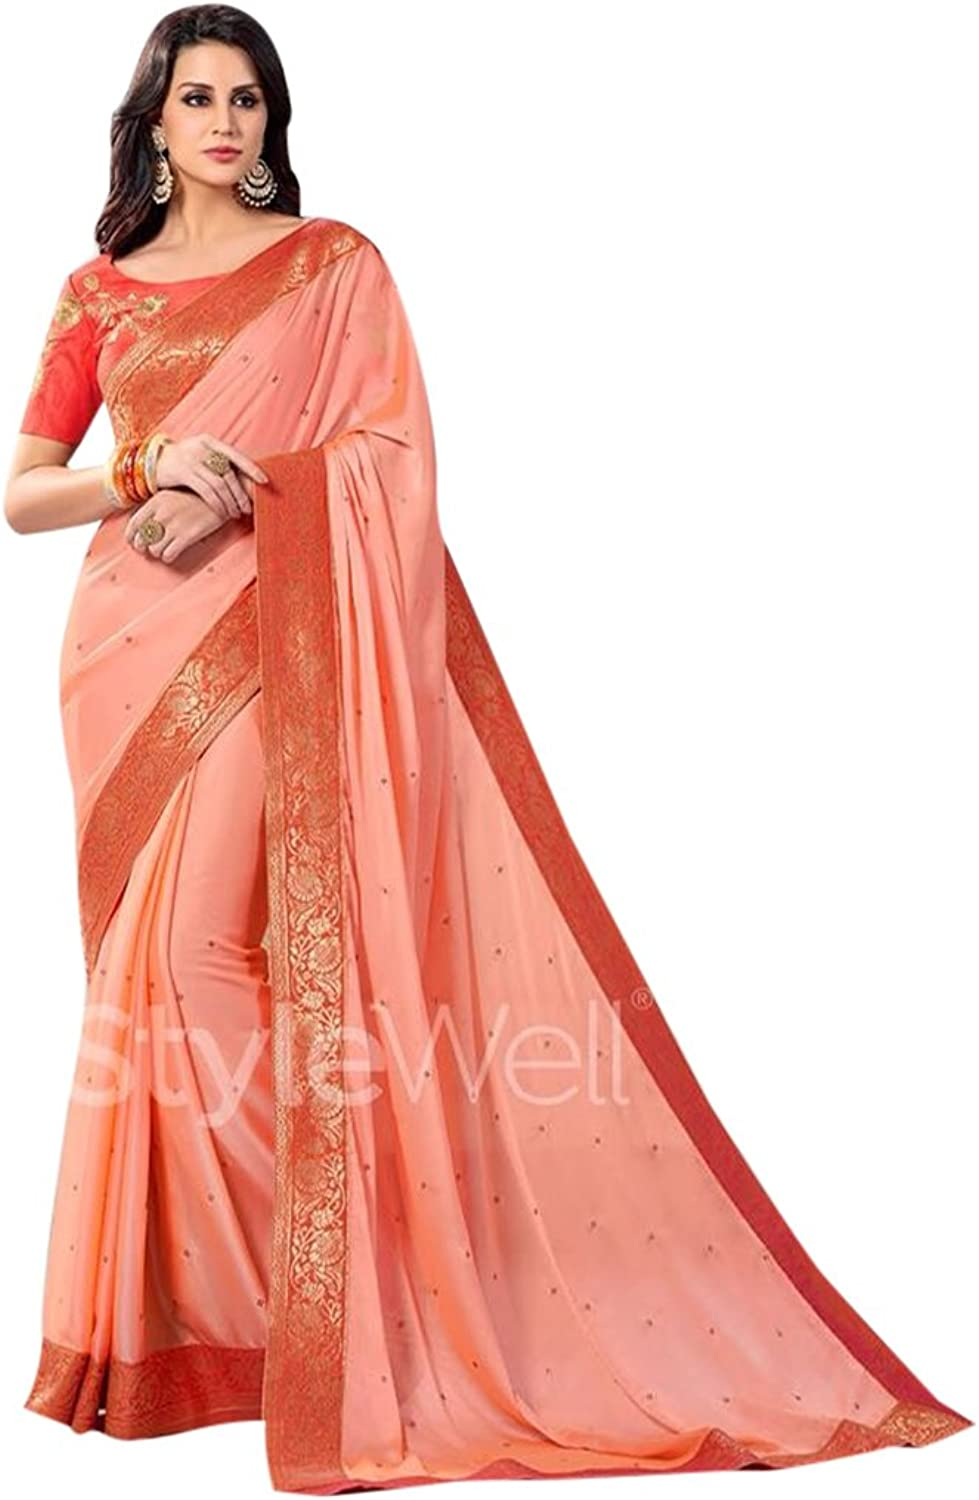 Bollywood Bridal Saree Sari for Women Collection Blouse Wedding Party Wear Ceremony 821 10